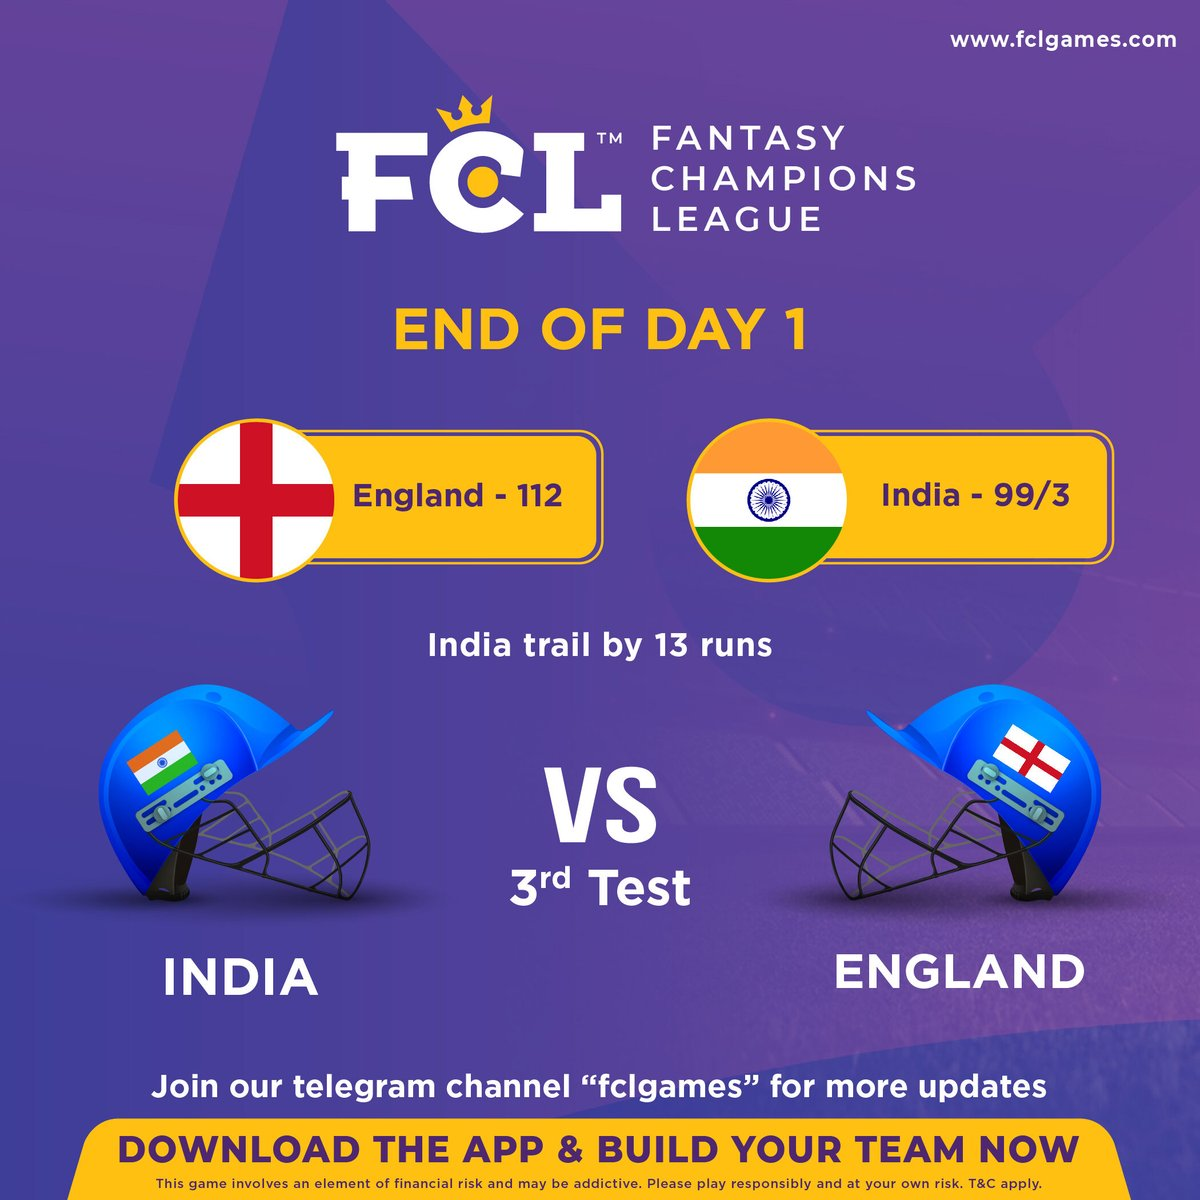 India Vs England - 3rd Test Match  End of day 1  Engalnd - 112 India - 99/3 (India trail by 13 runs)  #fcl #fclupdates #cricketupdate #indiavsengland #downloadfcl #playfcl #fclapp #downloadnow #cricketlovers